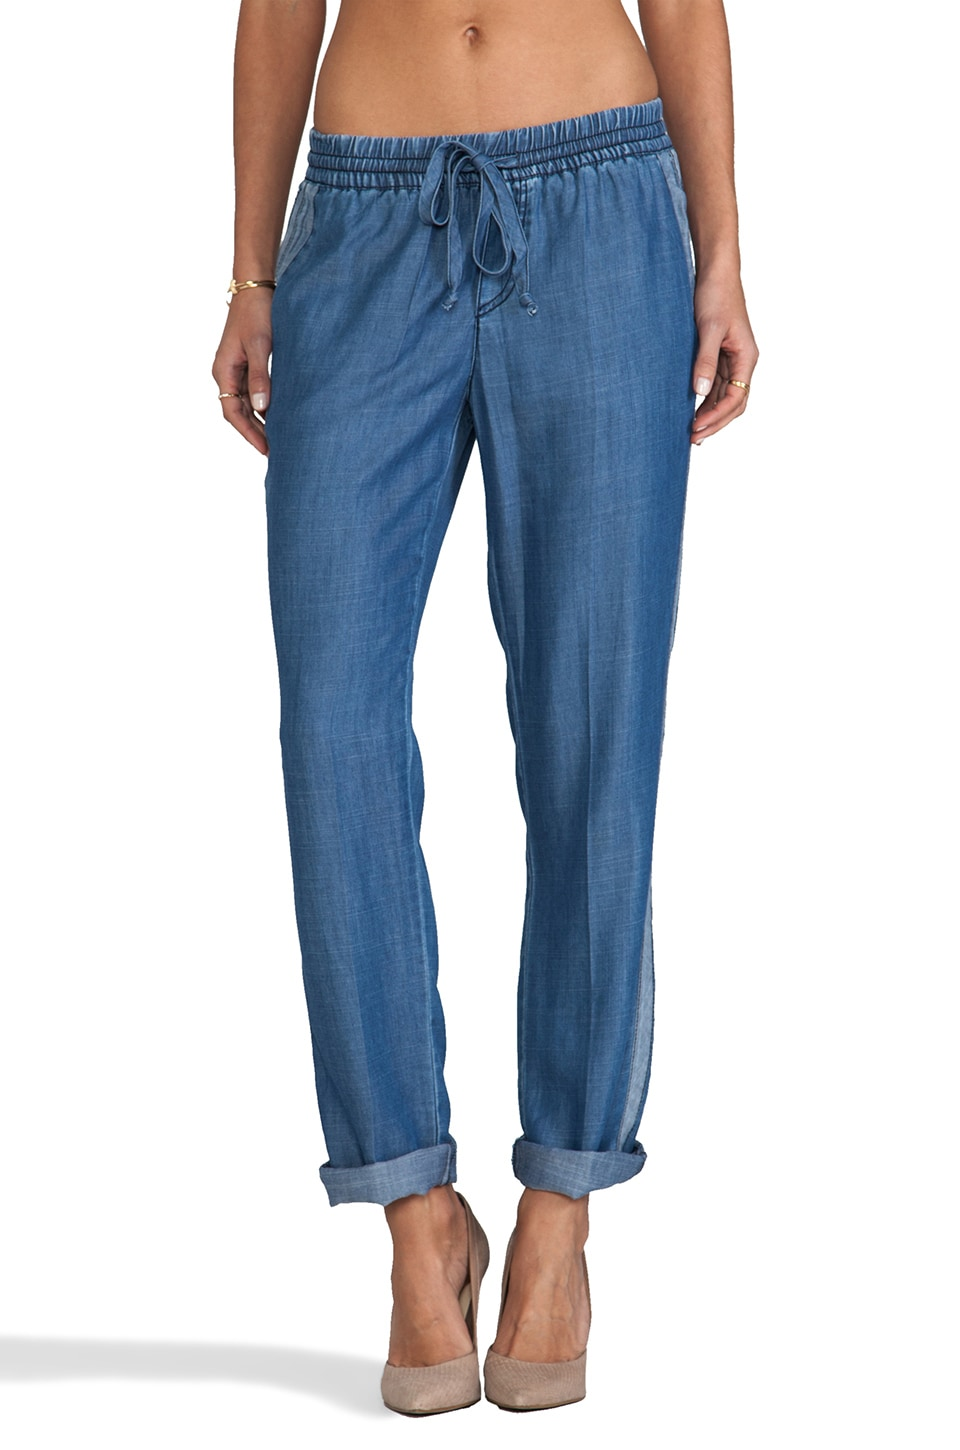 Michael Stars Denim Tencel Drawstring Pant in Chambray